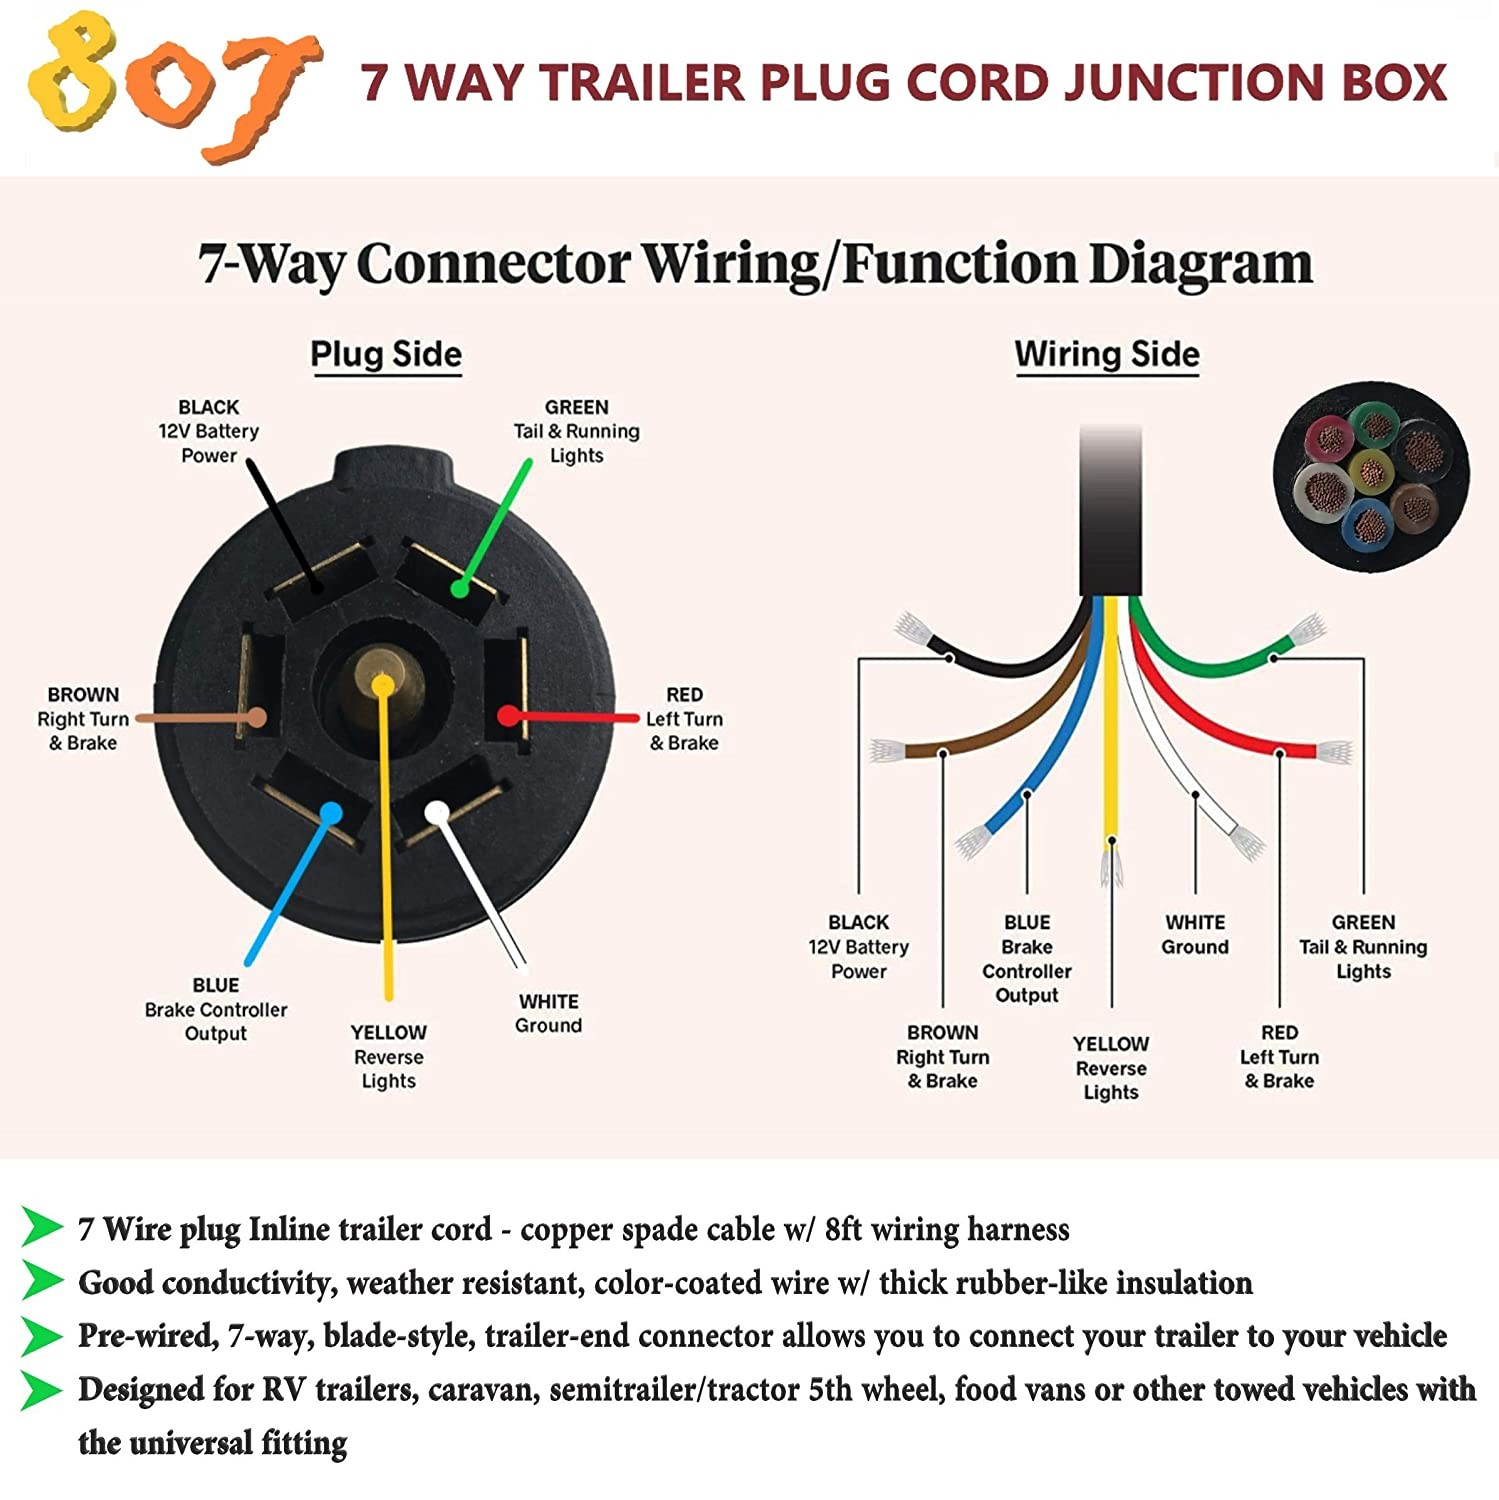 Pollak Trailer Plug Wiring Diagram Trailer 7 Pin Plug Wiring Diagram Wire Wiring Of Pollak Trailer Plug Wiring Diagram